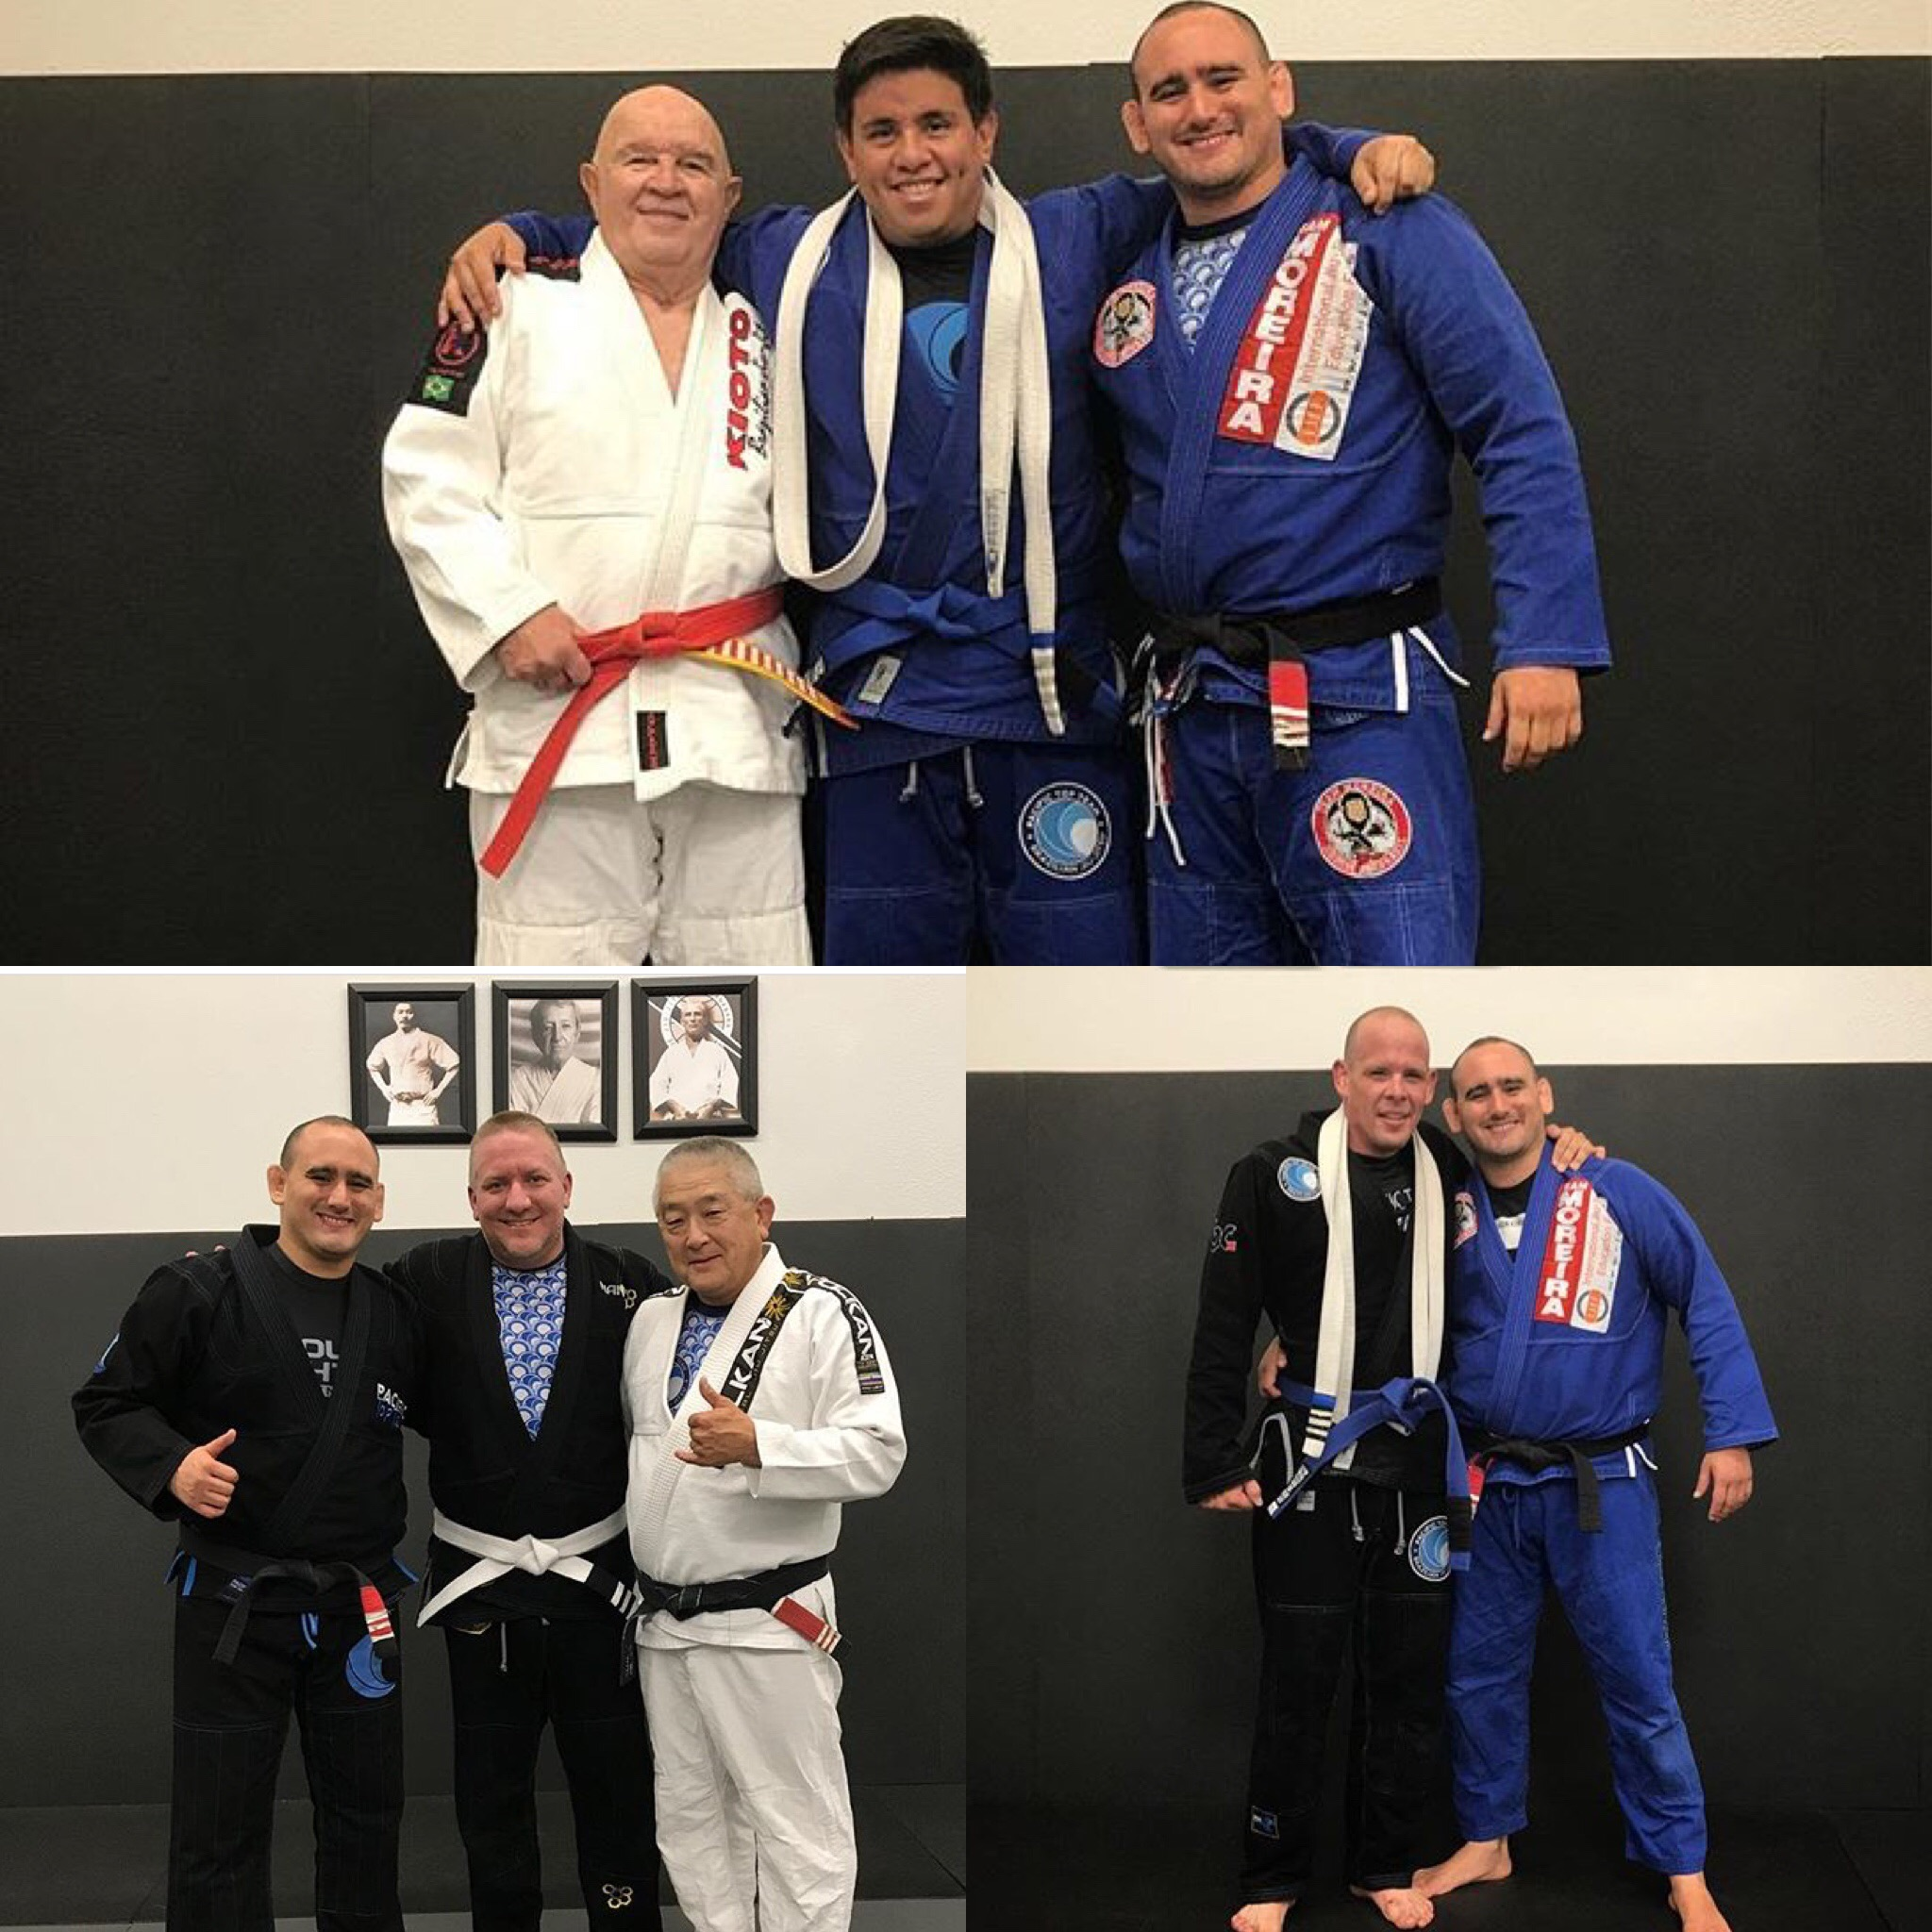 Super Congrats to Coach Mario and Bryan for receiving their blue belts